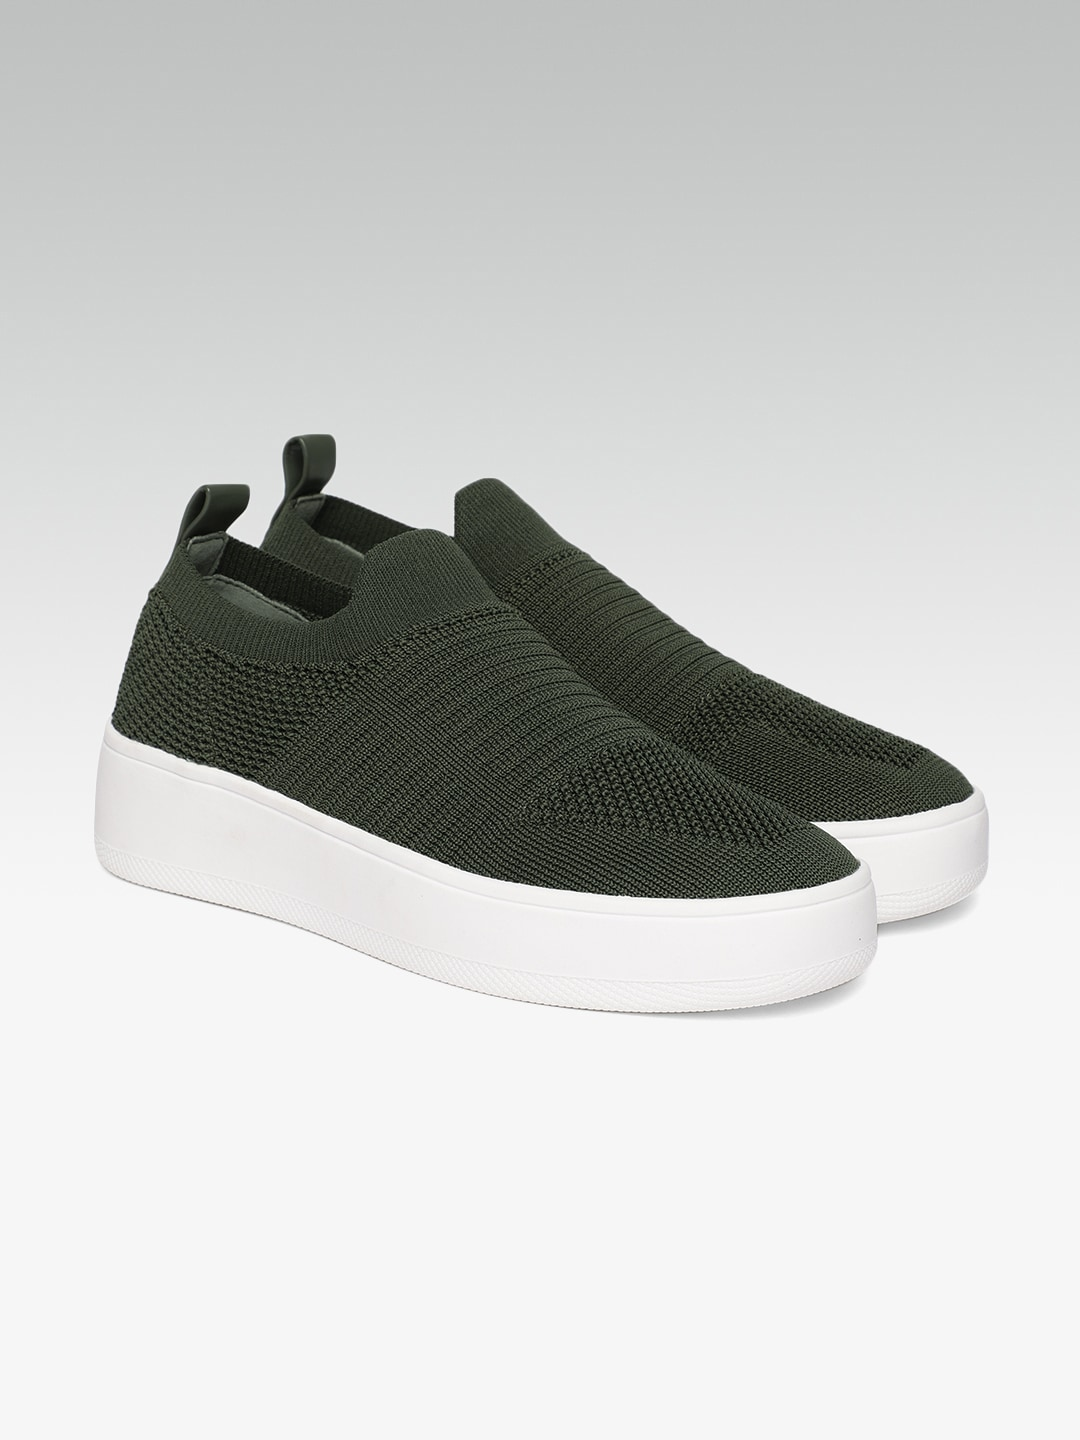 68e7730756e Steve Madden Casual Shoes - Buy Steve Madden Casual Shoes online in India